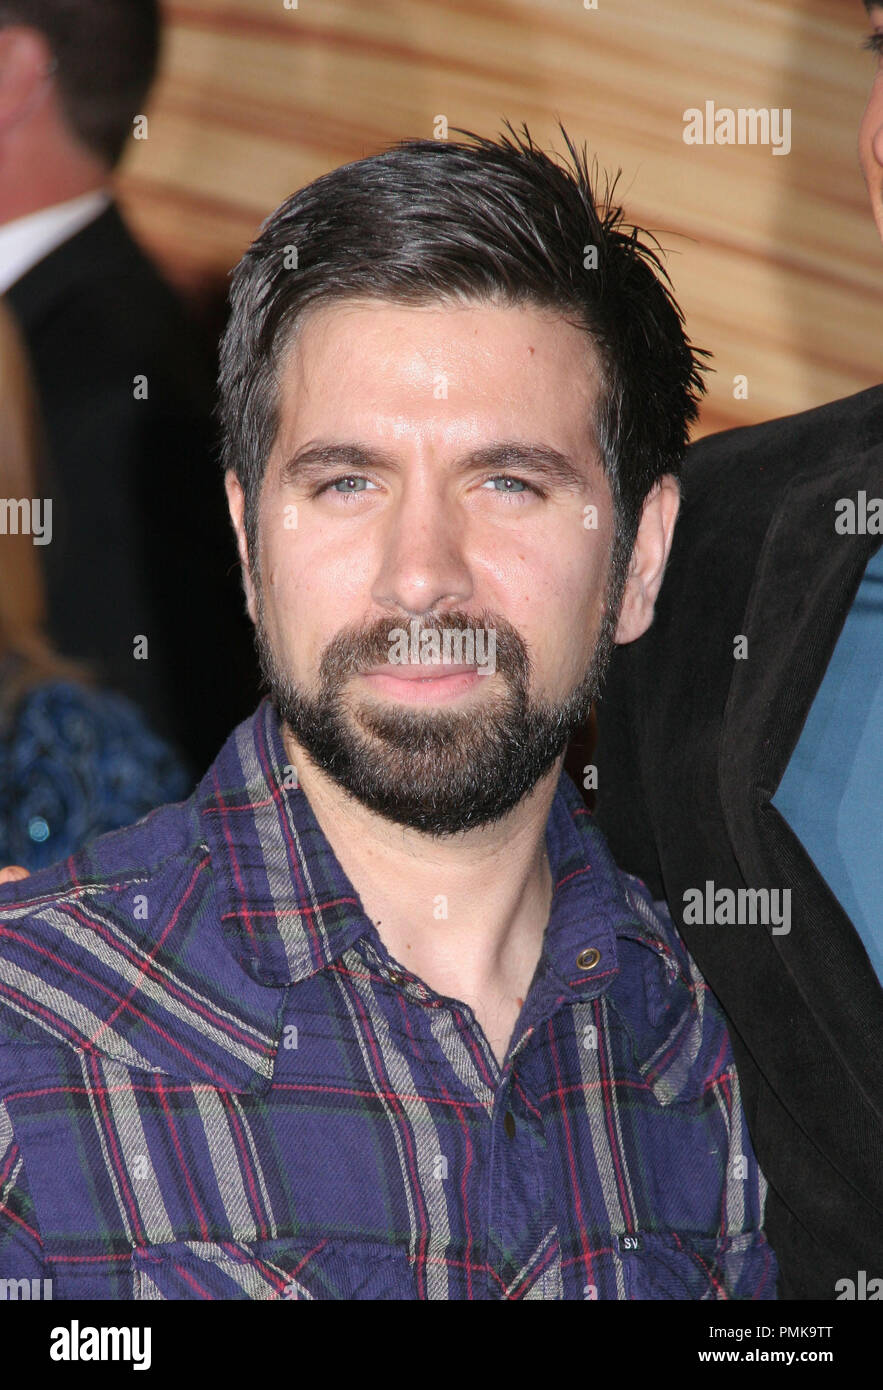 Joshua Gomez High Resolution Stock Photography And Images Alamy Luis gomez official sherdog mixed martial arts stats, photos, videos, breaking news, and more for the featherweight fighter from united states. https www alamy com joshua gomez 111410 tangled premiere el capitan theatre hollywood ph ima kurodahnw picturelux file reference 30700 116plx for editorial use only all rights reserved image219242376 html